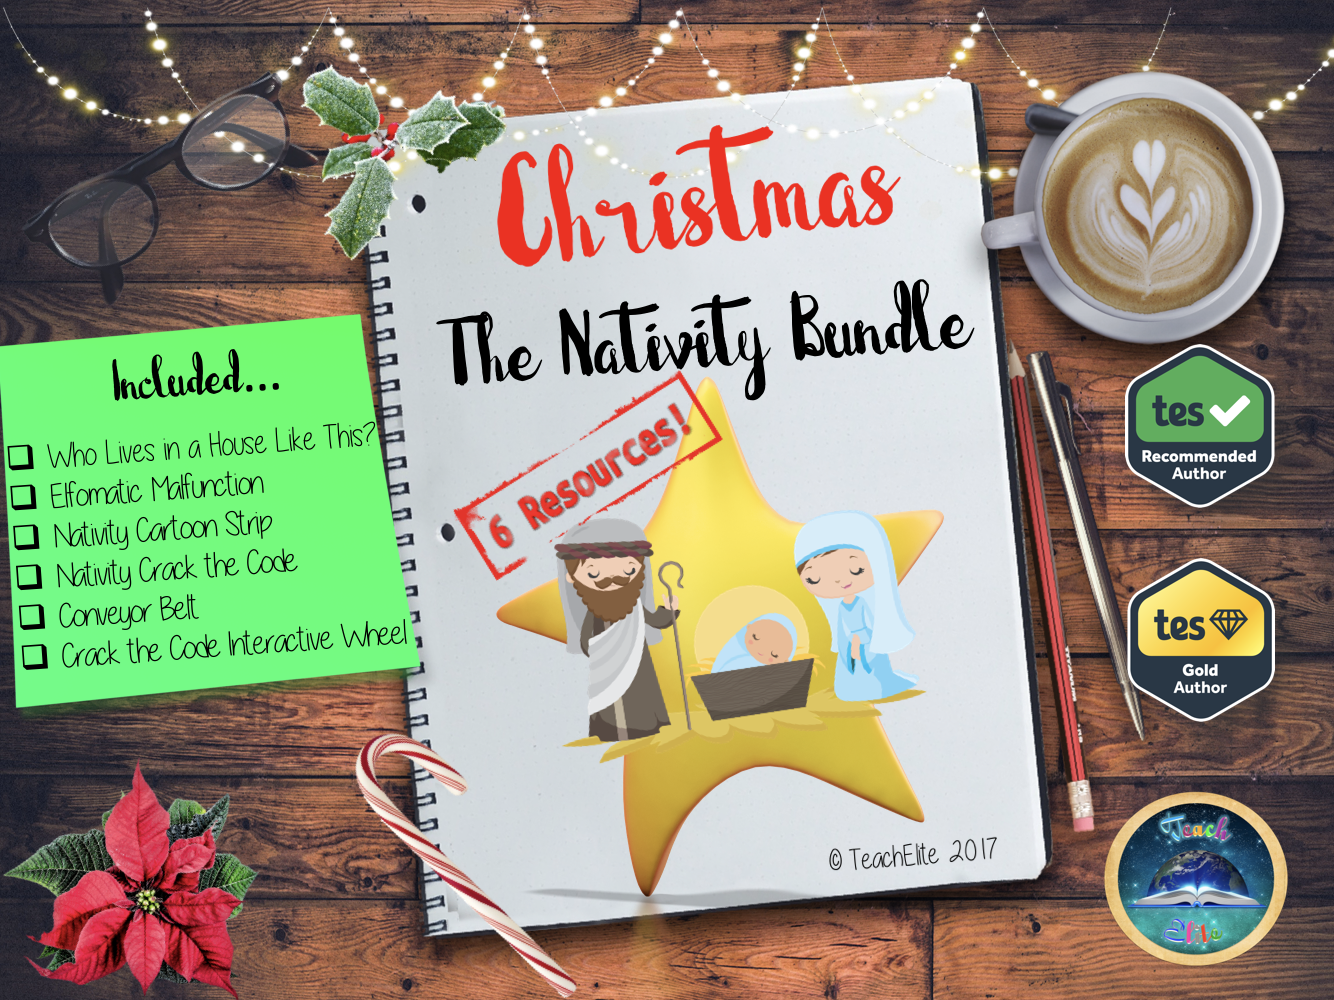 The Nativity Bundle